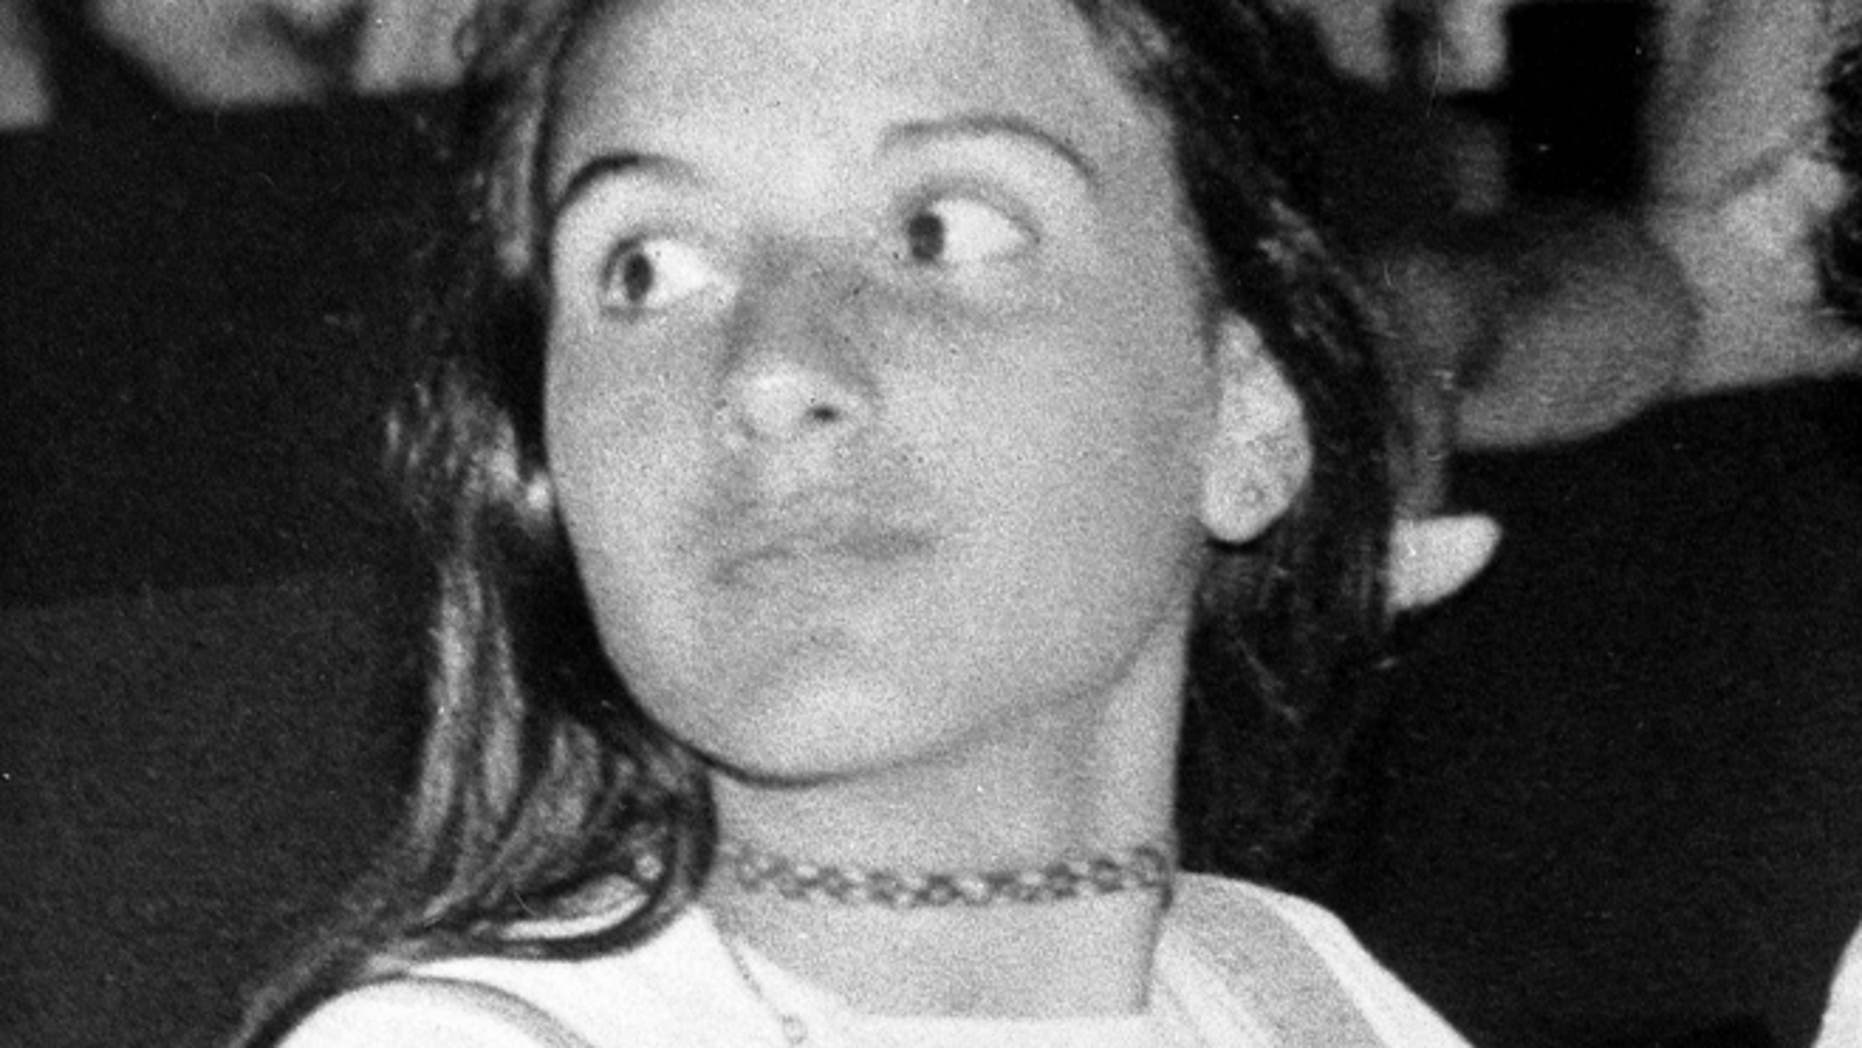 An undated  photo showing Italian teenager Emanuela Orlandi, the daughter of a Vatican employee, believed to have been kidnapped after a music lesson in Rome on June 22, 1983 when she was 15-years-old.